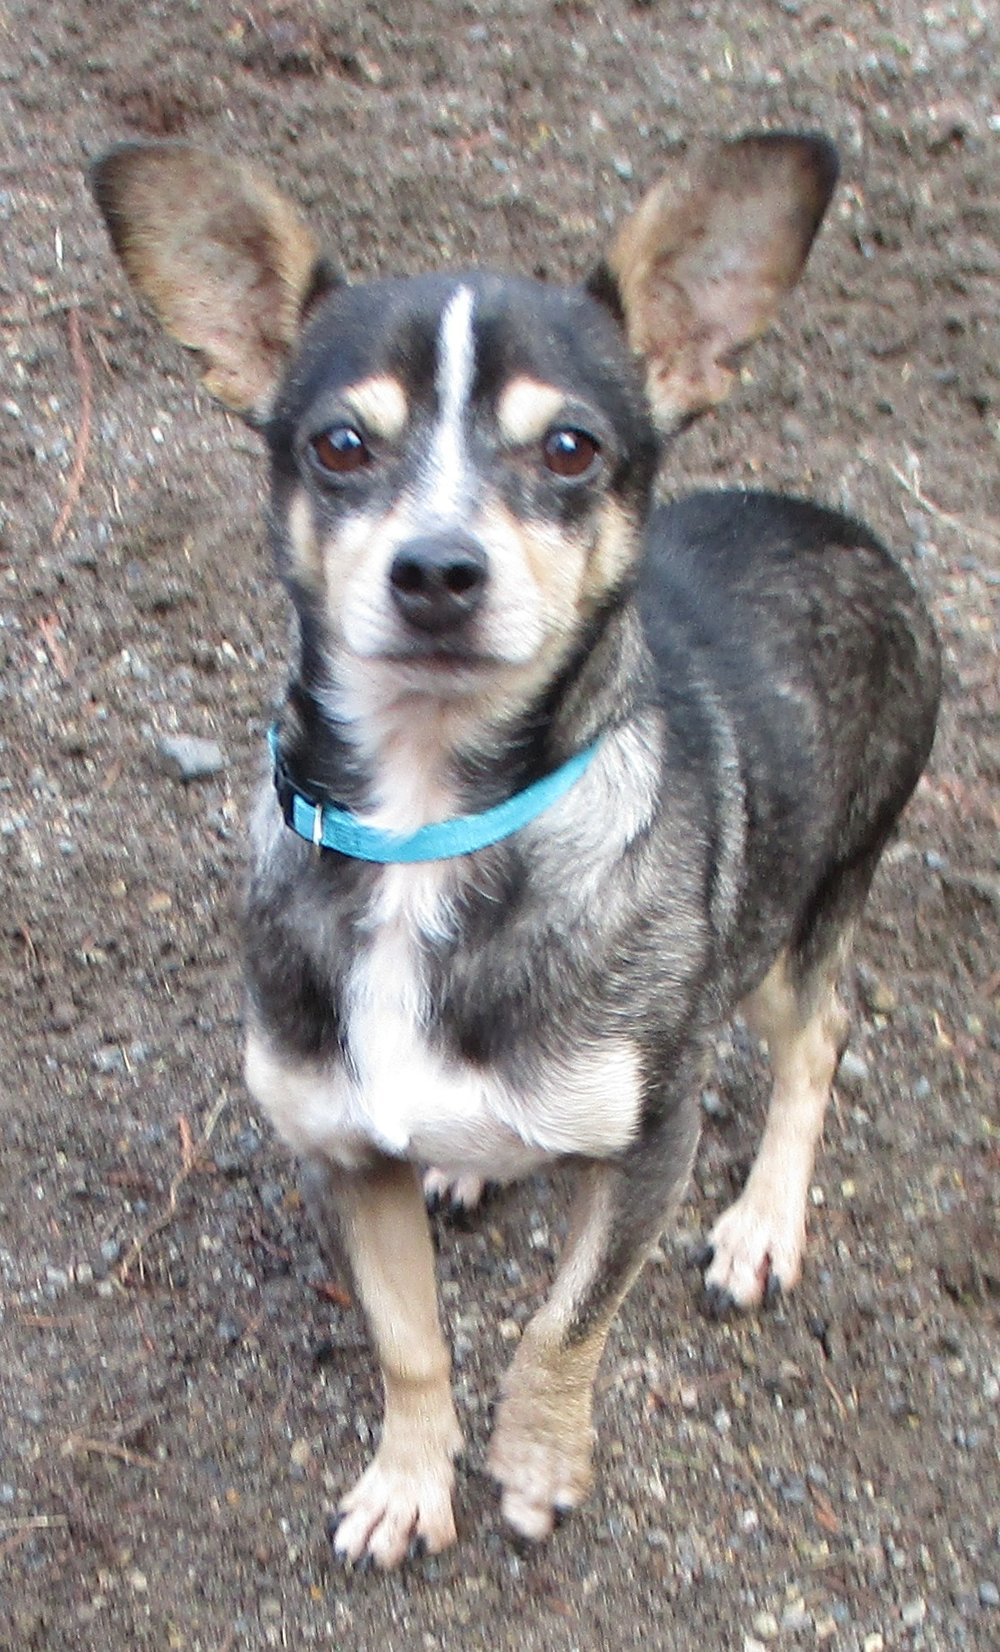 """AMOS: 4-5 yrs old. Chihuahua Mix. 8 lbs approx. Amos is super sweet and cuddly. He was in a California shelter and came here to Oregon to find a home, unfortunately the home had an abusive 5 yr old child in it. Amos loves to be held and loved on but you have to be careful with him. If he thinks your going to hurt him he will give a little cry. He loves children but he does not like being packed around like a toy doll.  He loves sleeping under the covers. He often carries his little binky around with him and will find a spot to lay down and cover himself up with it, it's darling. He also likes going to short walks or """"strolls"""" but is definitely not a marathon walker. LOVES going in the car and will sit in there perfectly behaved for hours. He thinks cars are crates with wheels. He hates the rain and will hold his potty for huge amounts of time to avoid it..lol. His adoption is $150.00 he has been neutered, has a current Rabies, DHLPP, Bordetella and flea top spot for the month."""